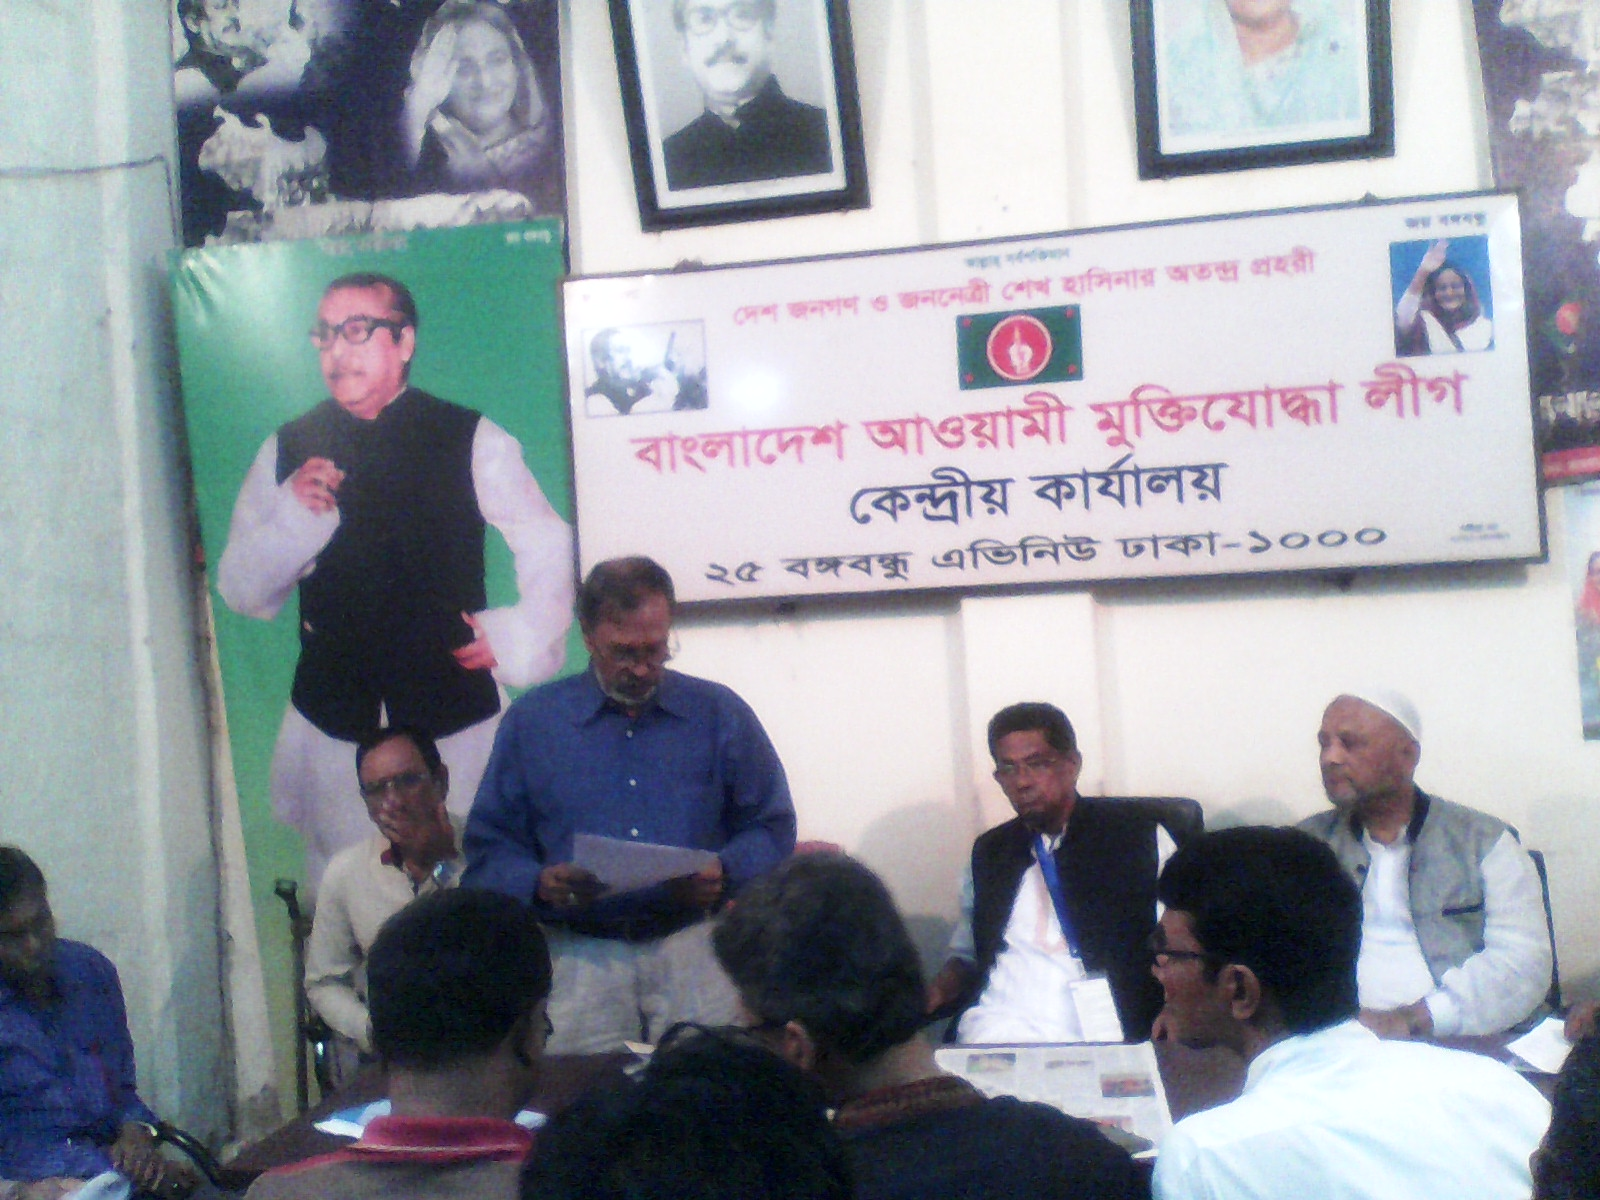 Govt to increase allowances of freedom fighters: Motiur